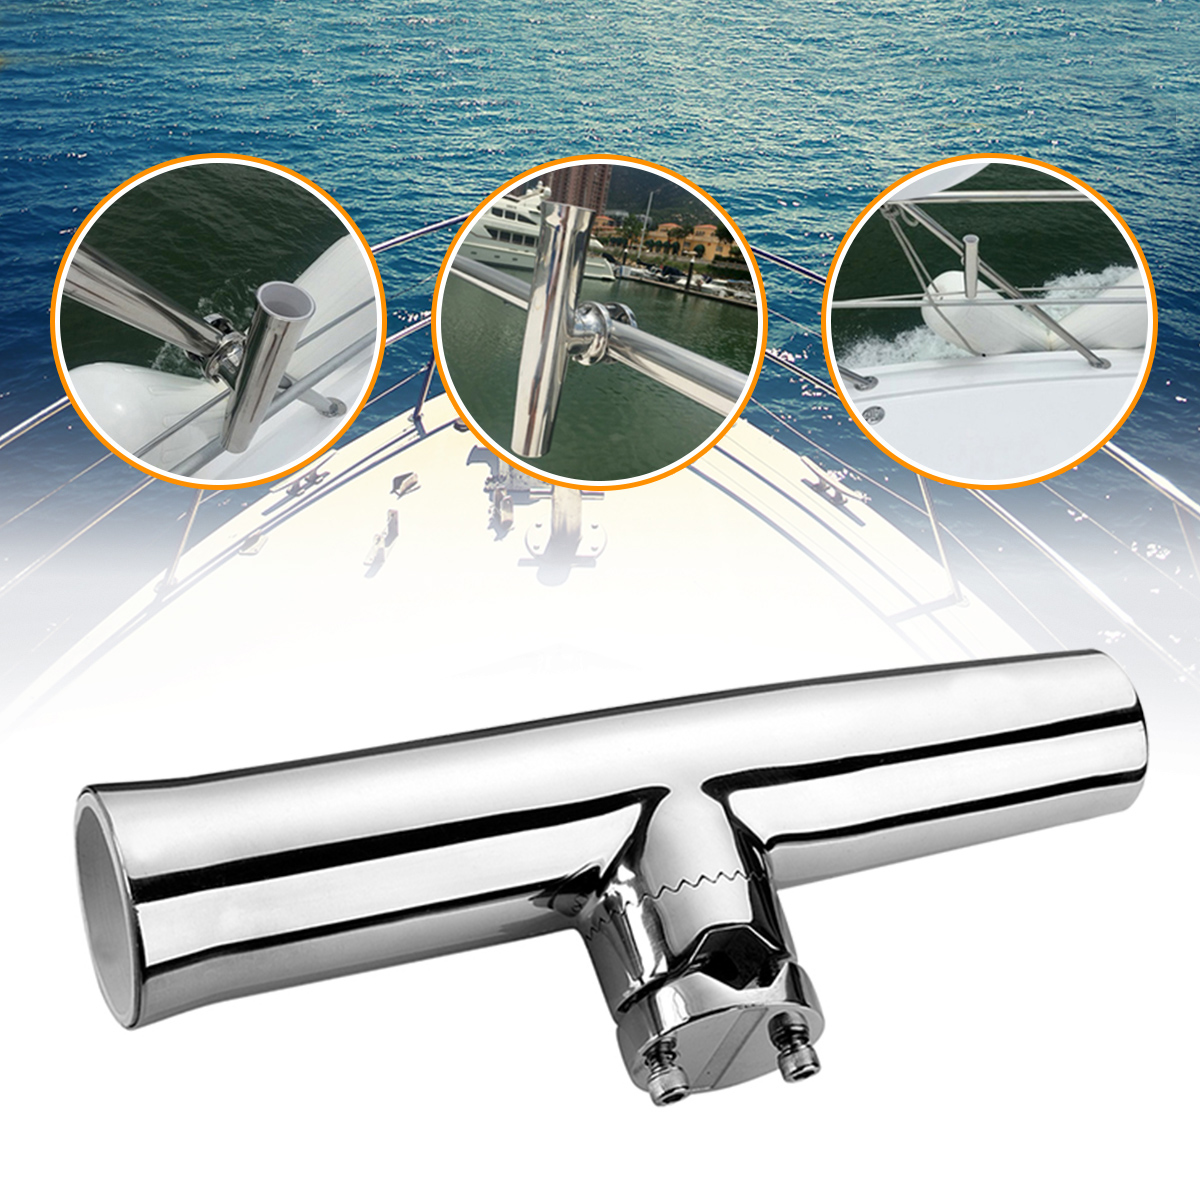 316 Stainless Steel 7/8''-1'' Tube Fishing Rod Holder B